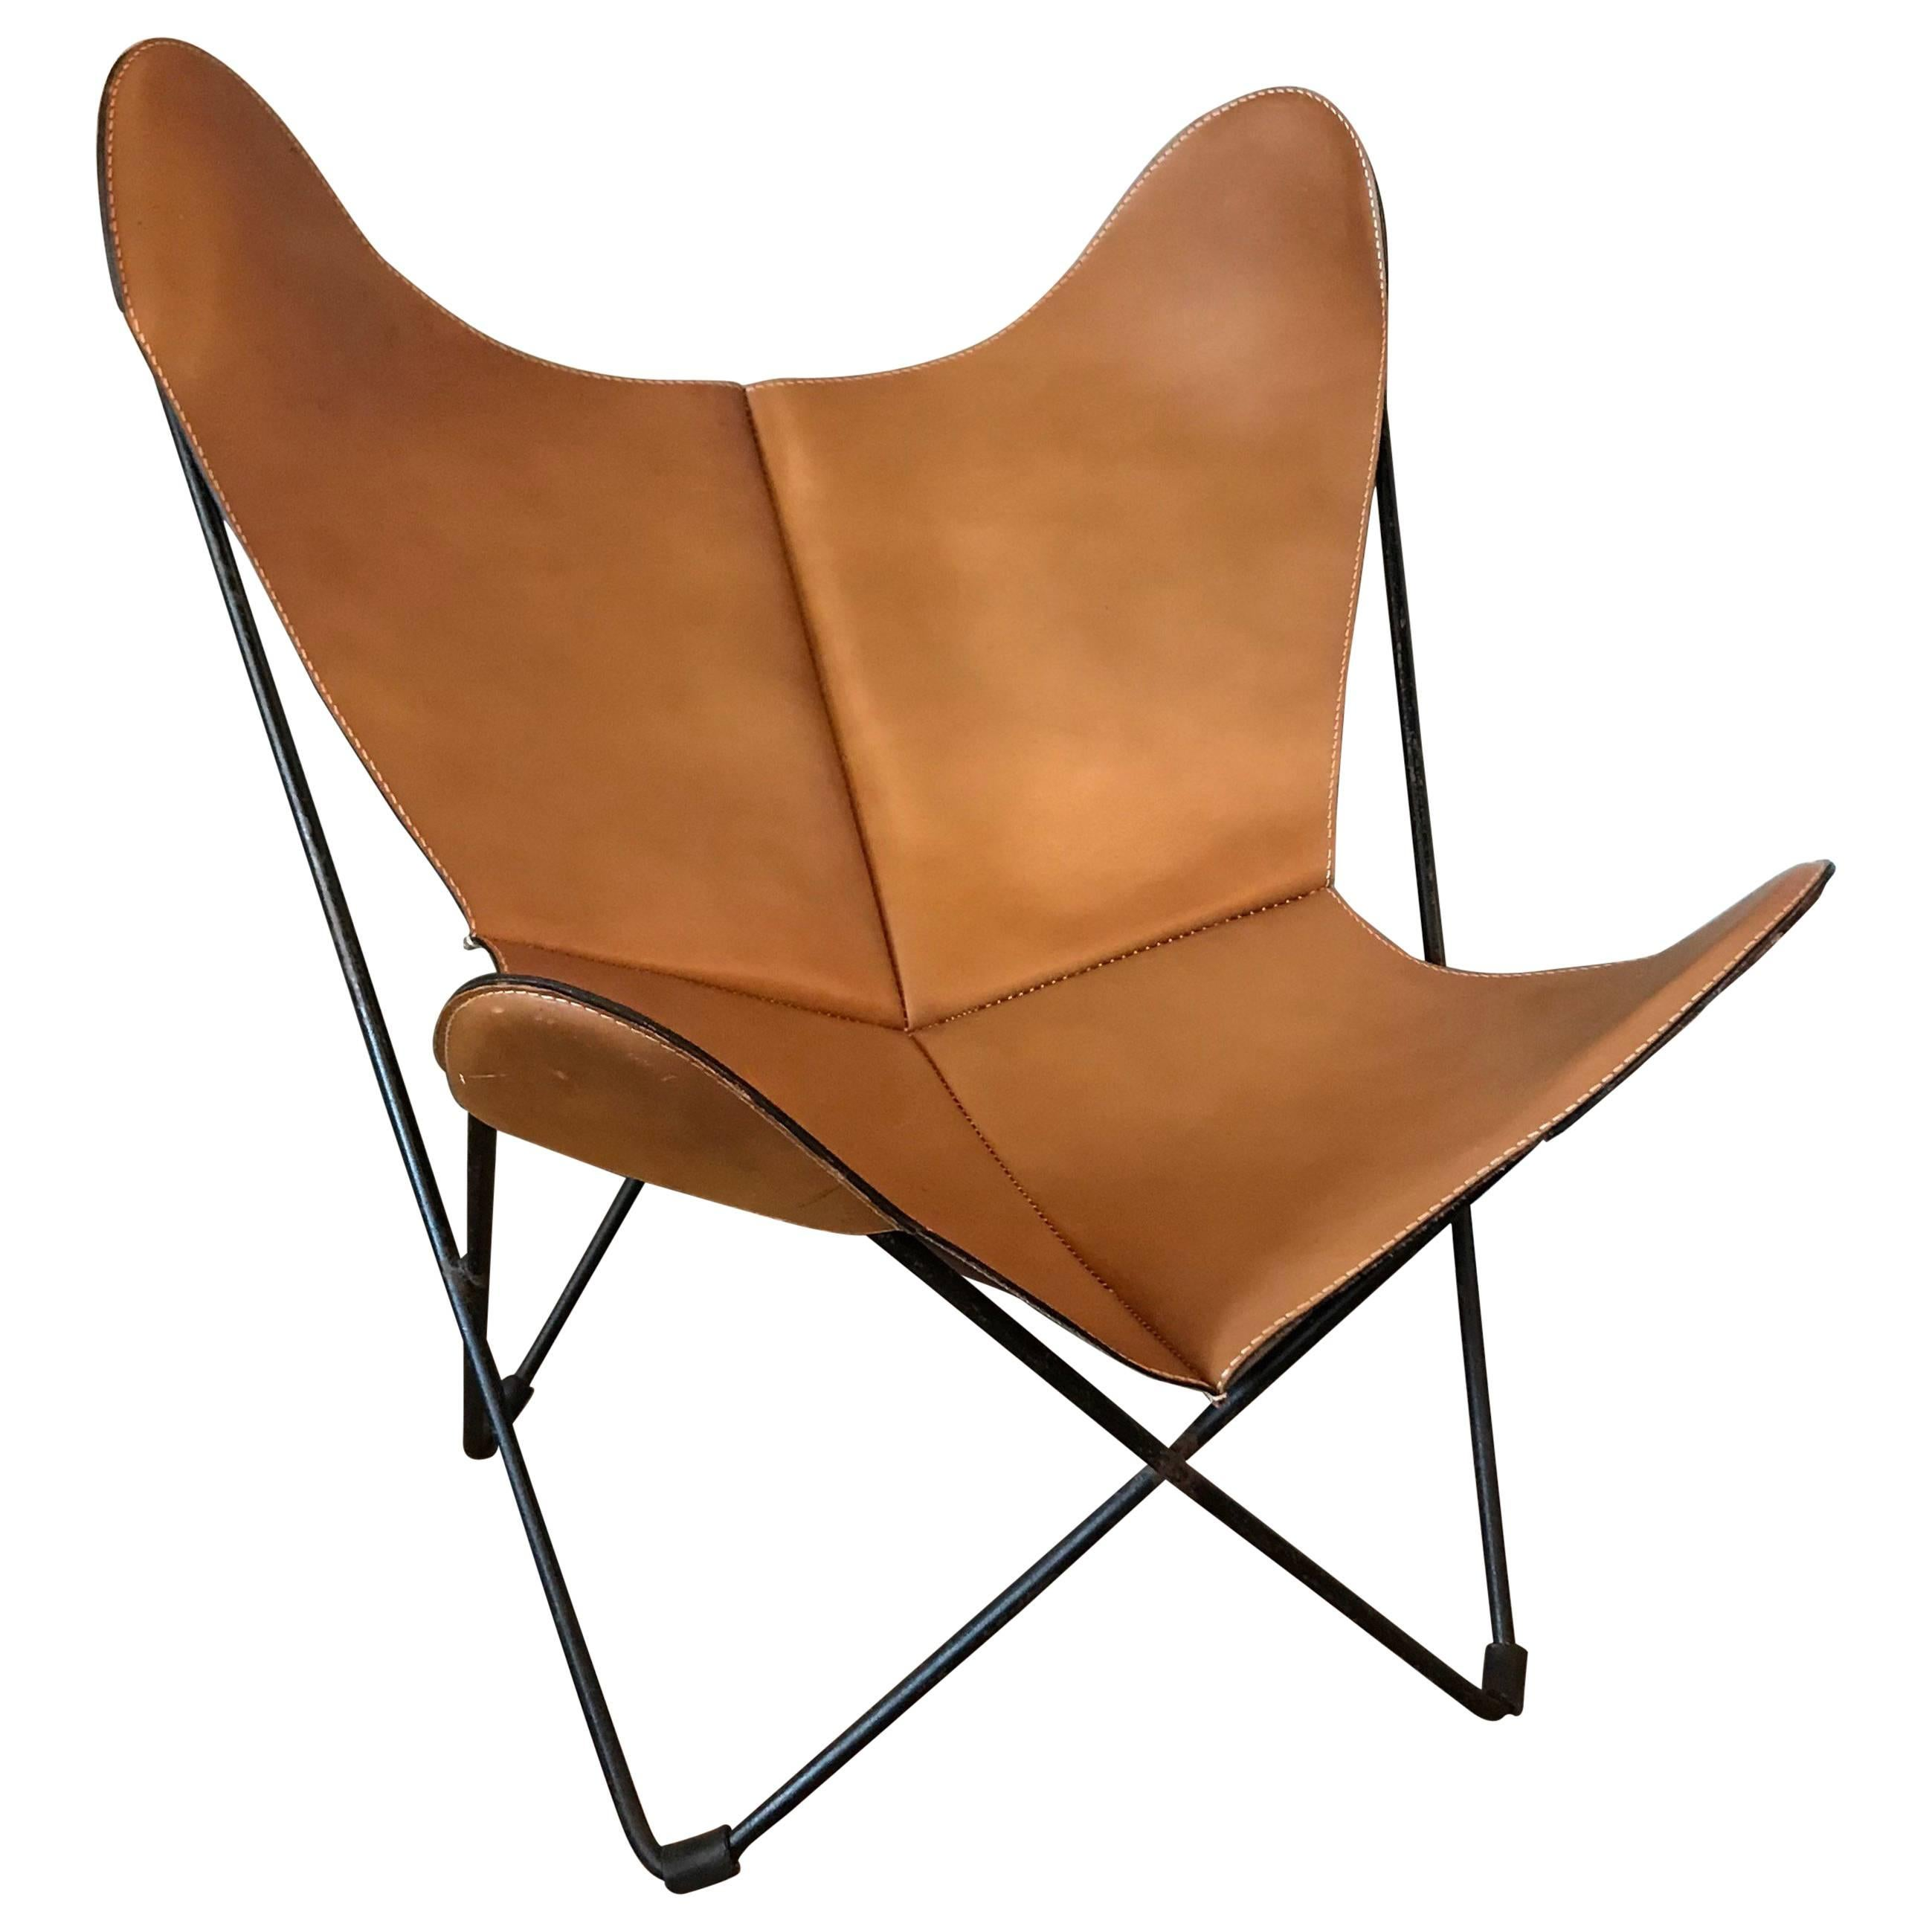 Jorge Ferrari Hardoy Leather Butterfly Chair